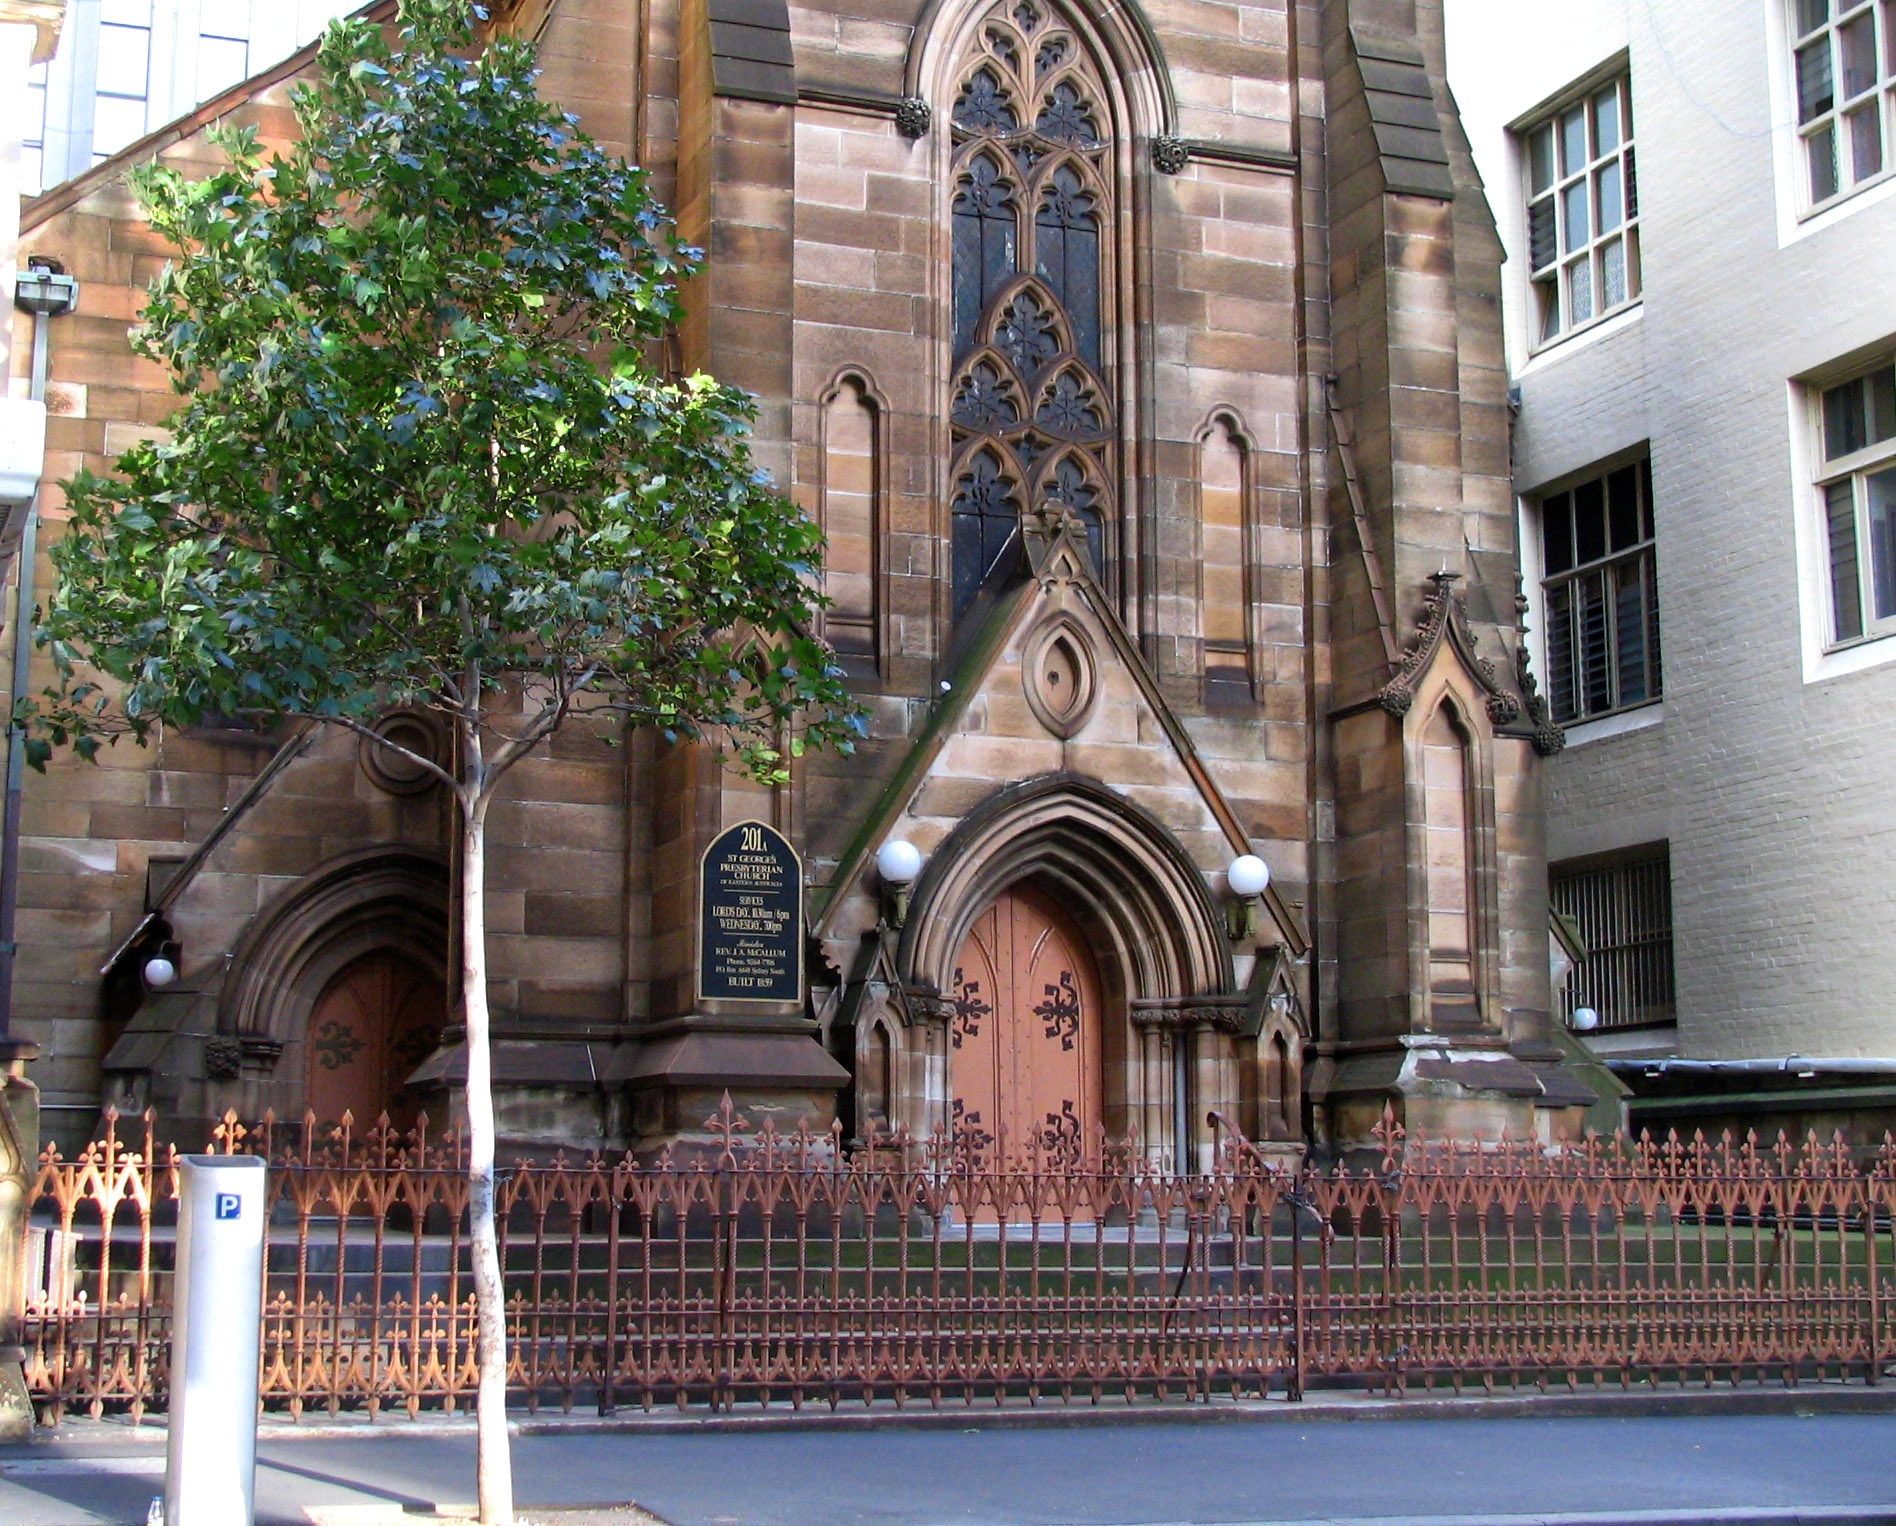 St George's Church, Sydney